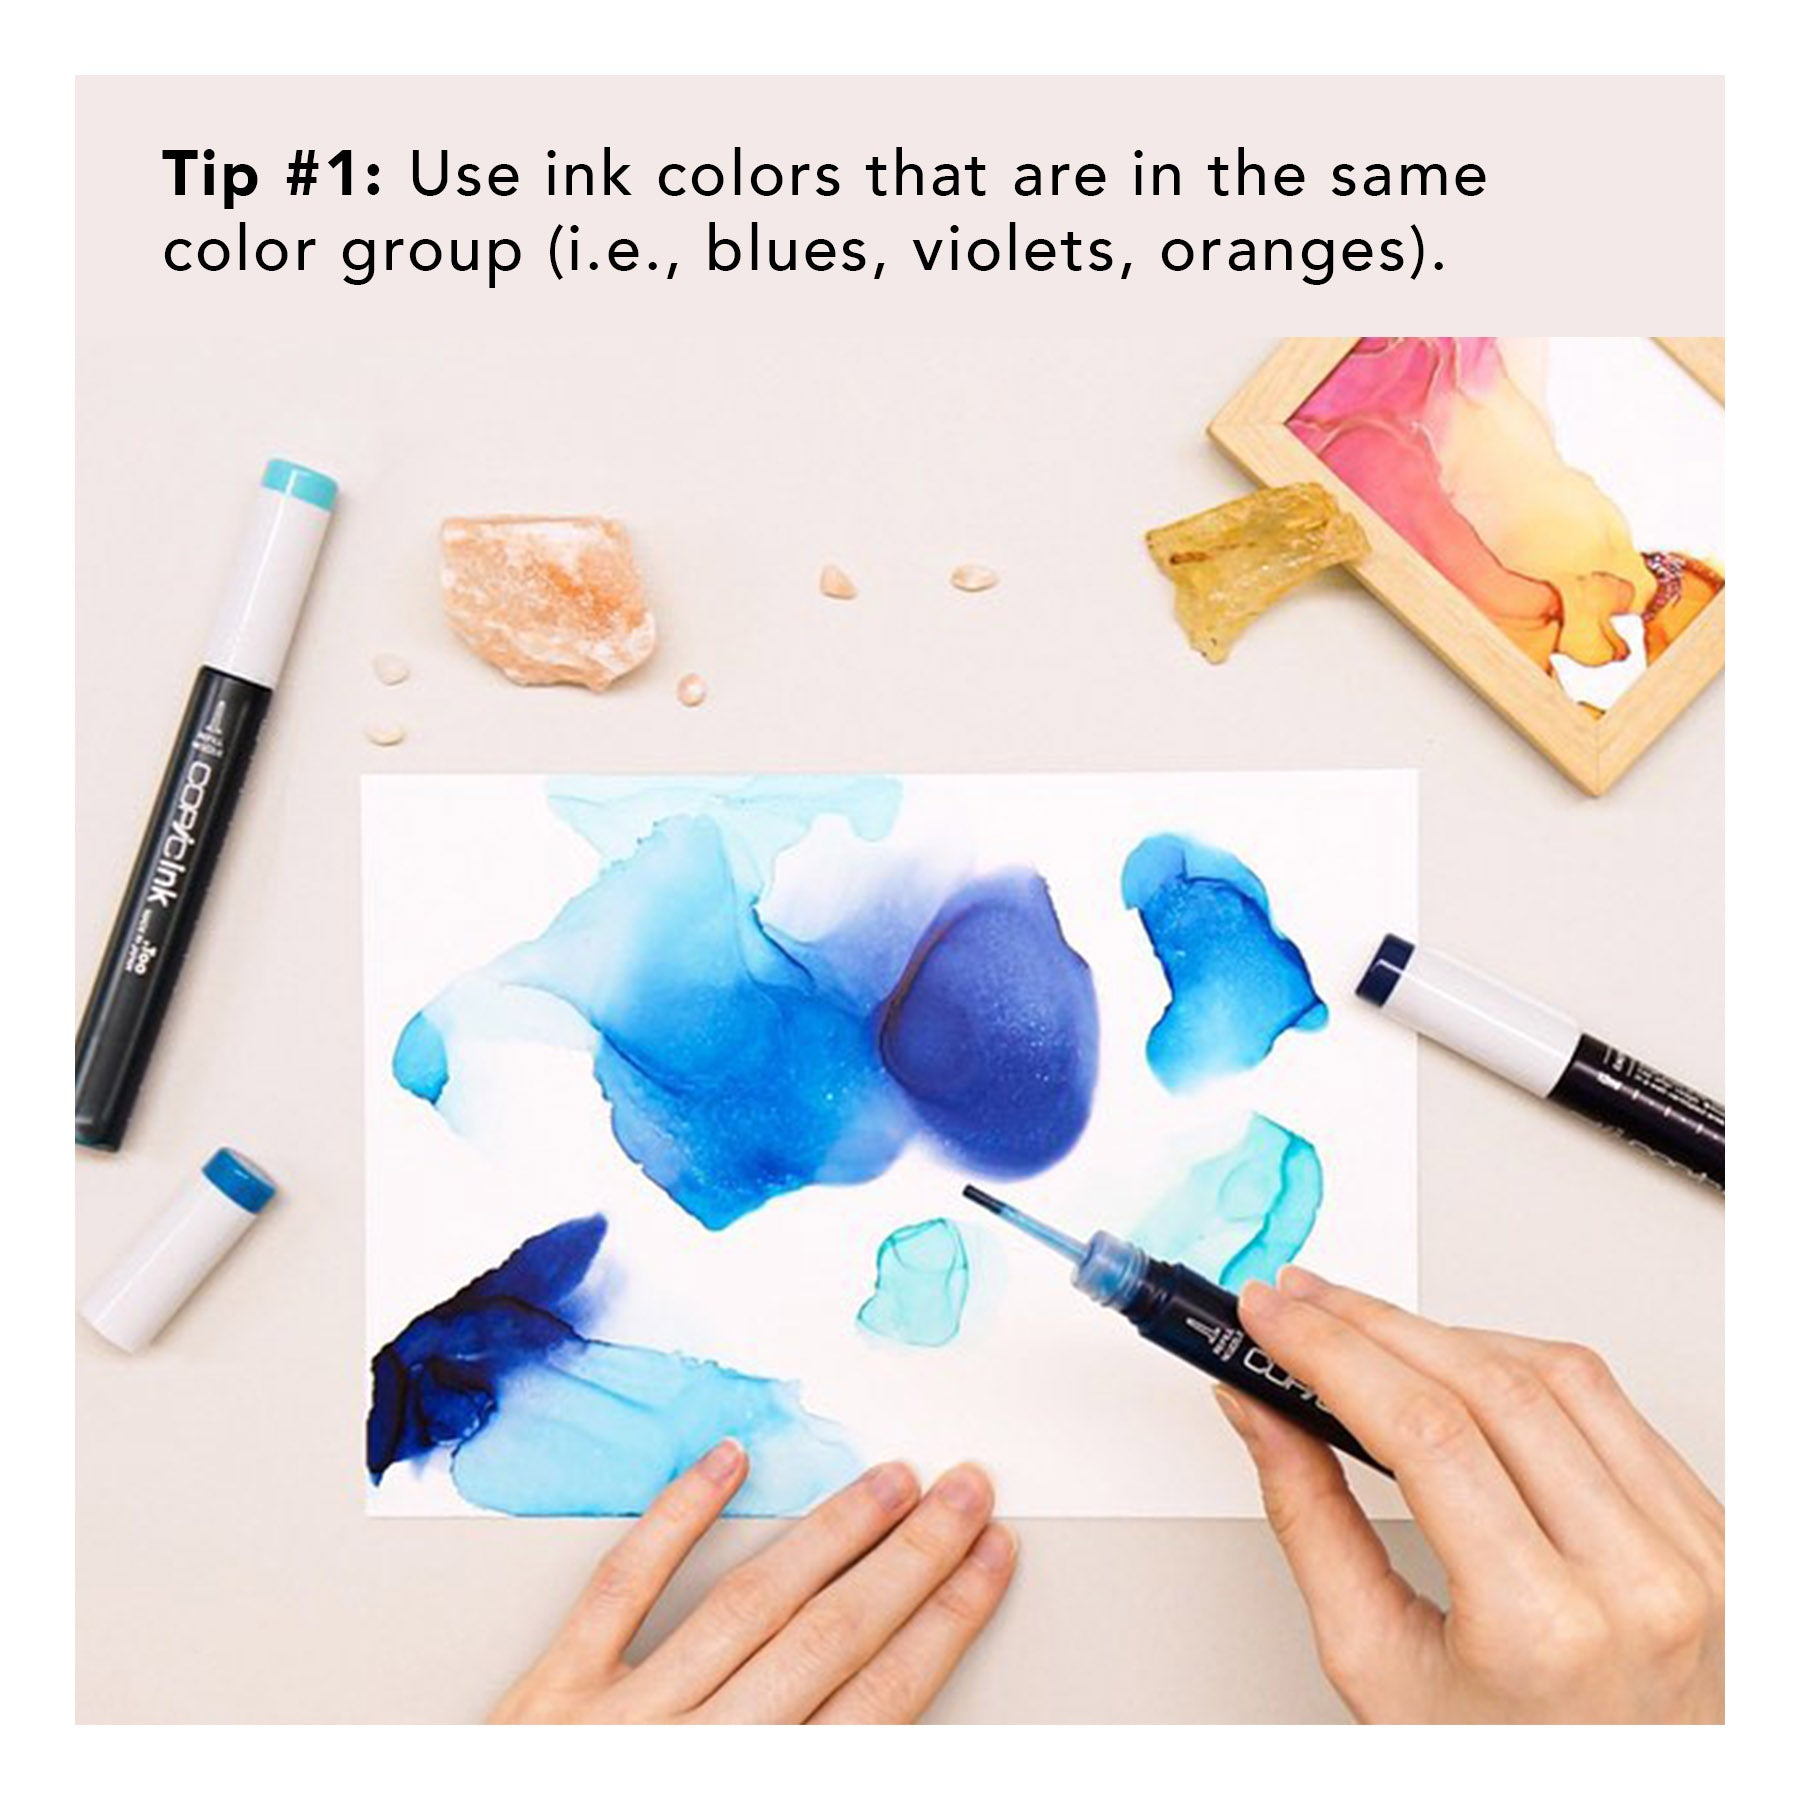 Tip no. 1: Use ink colors that are in the same color group.